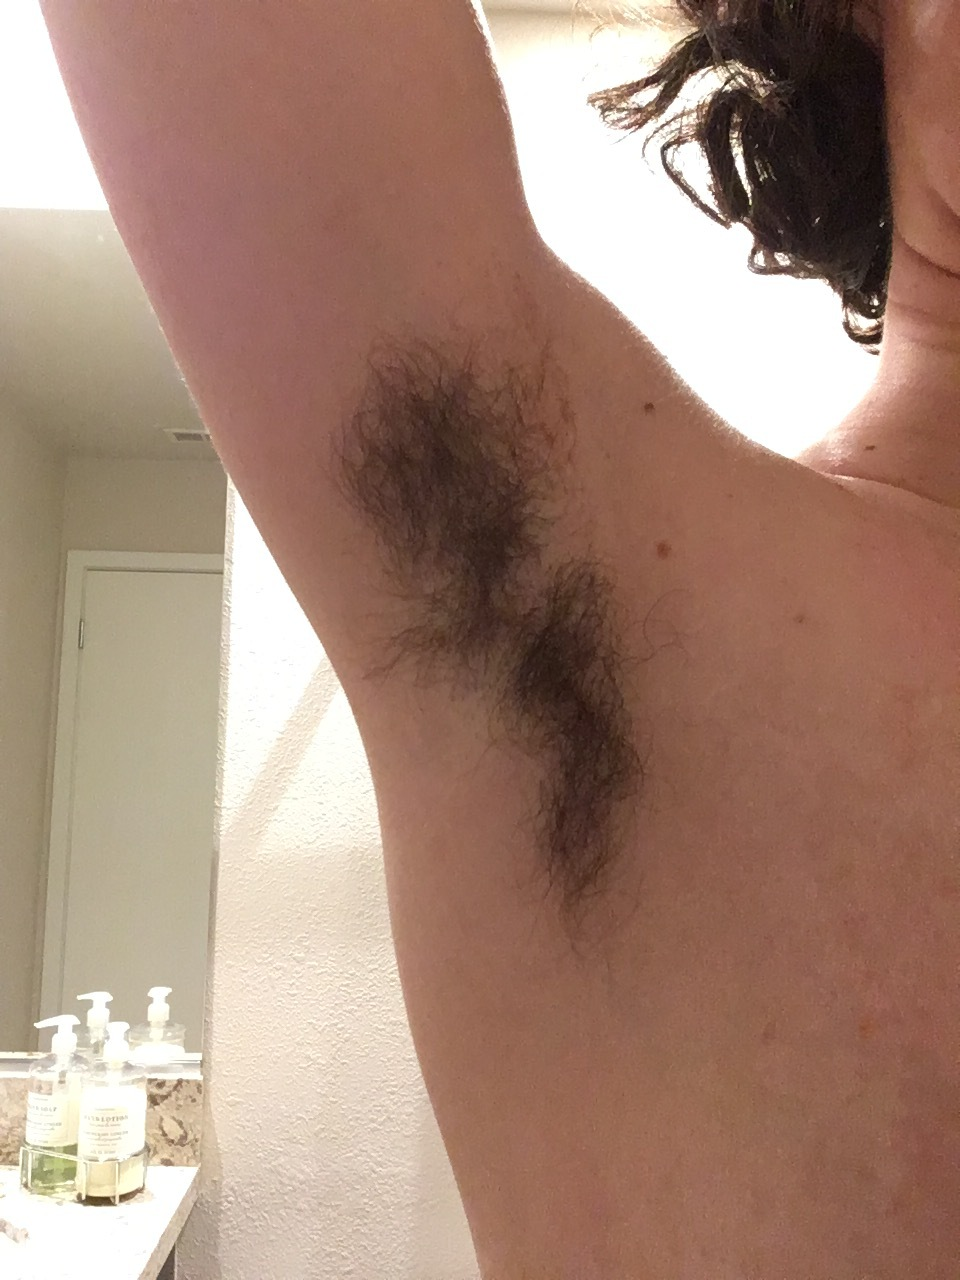 An image of unshaved underarm hair